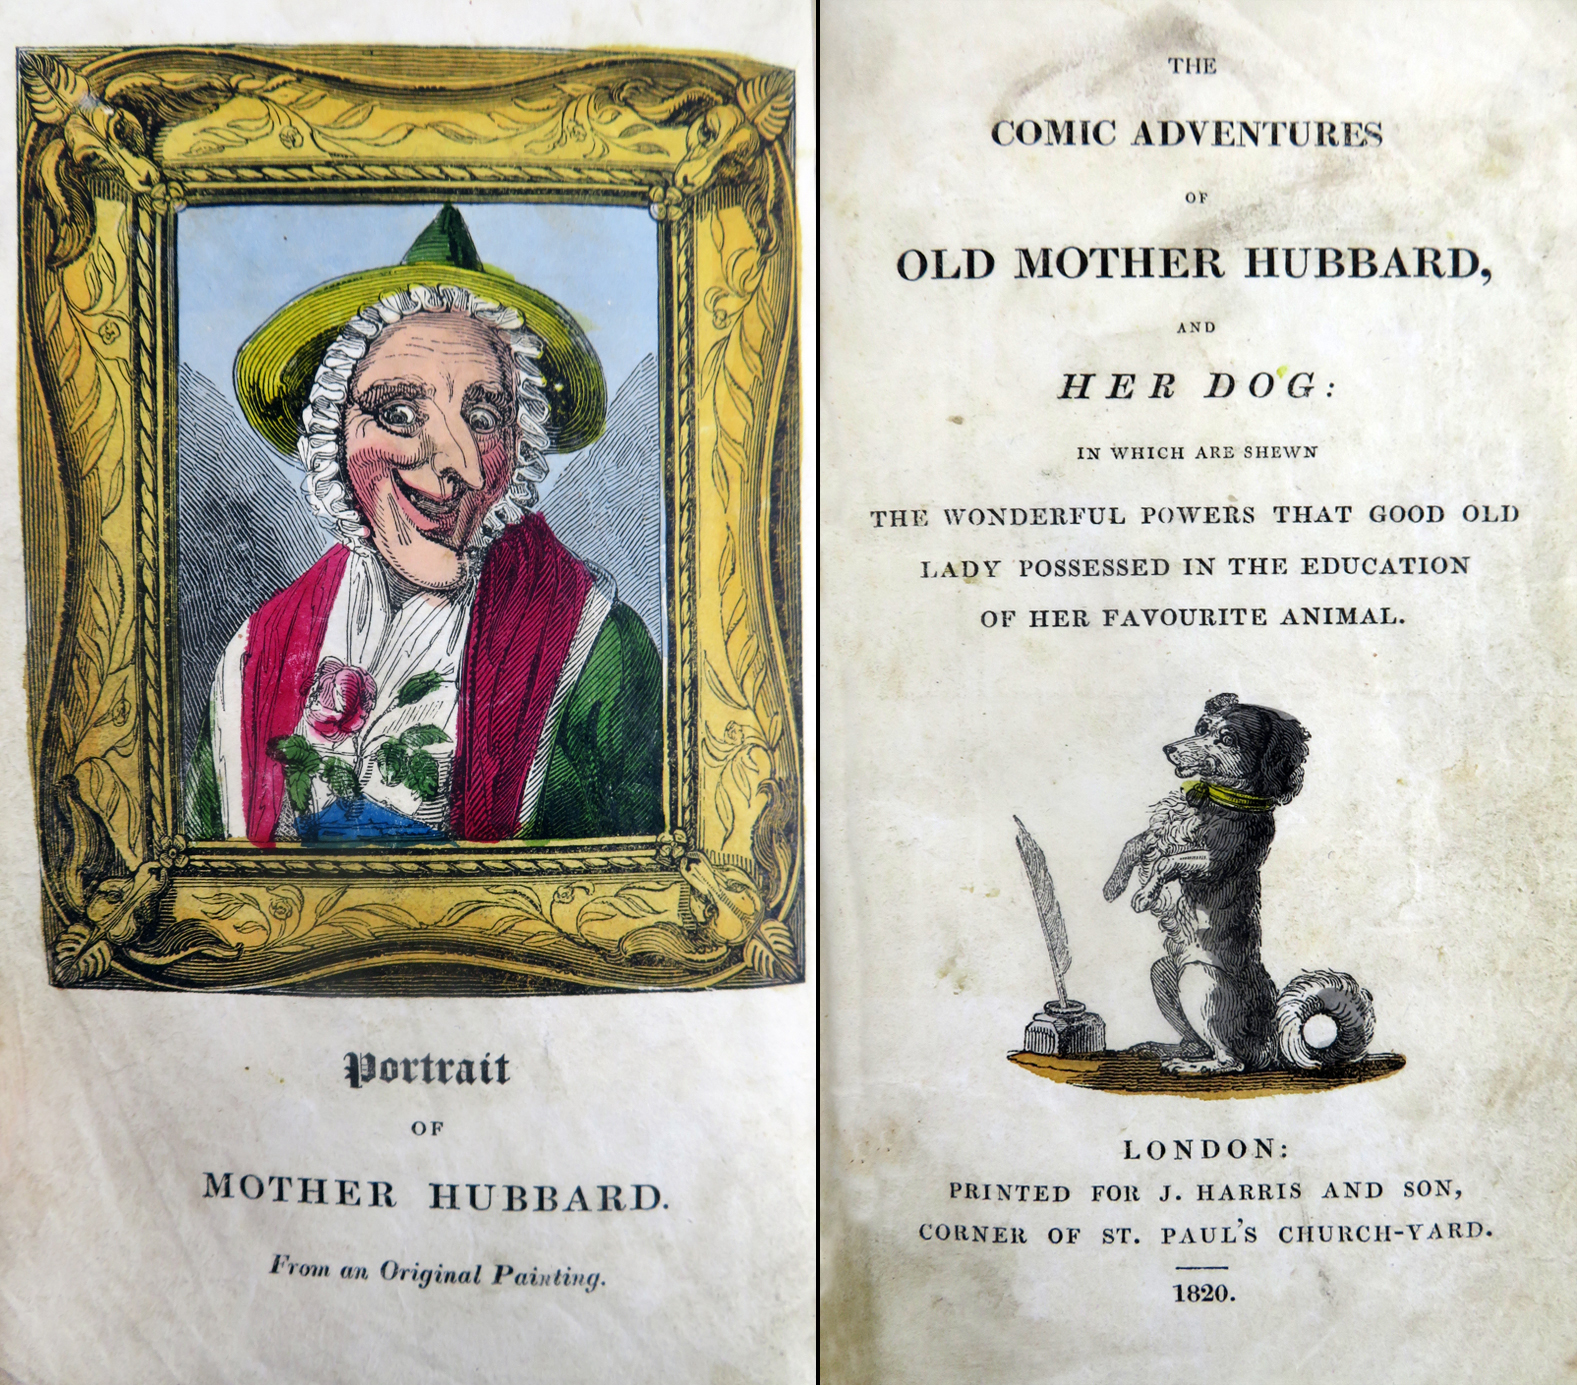 'Old Mother Hubbard' is Weirder Than You Thought